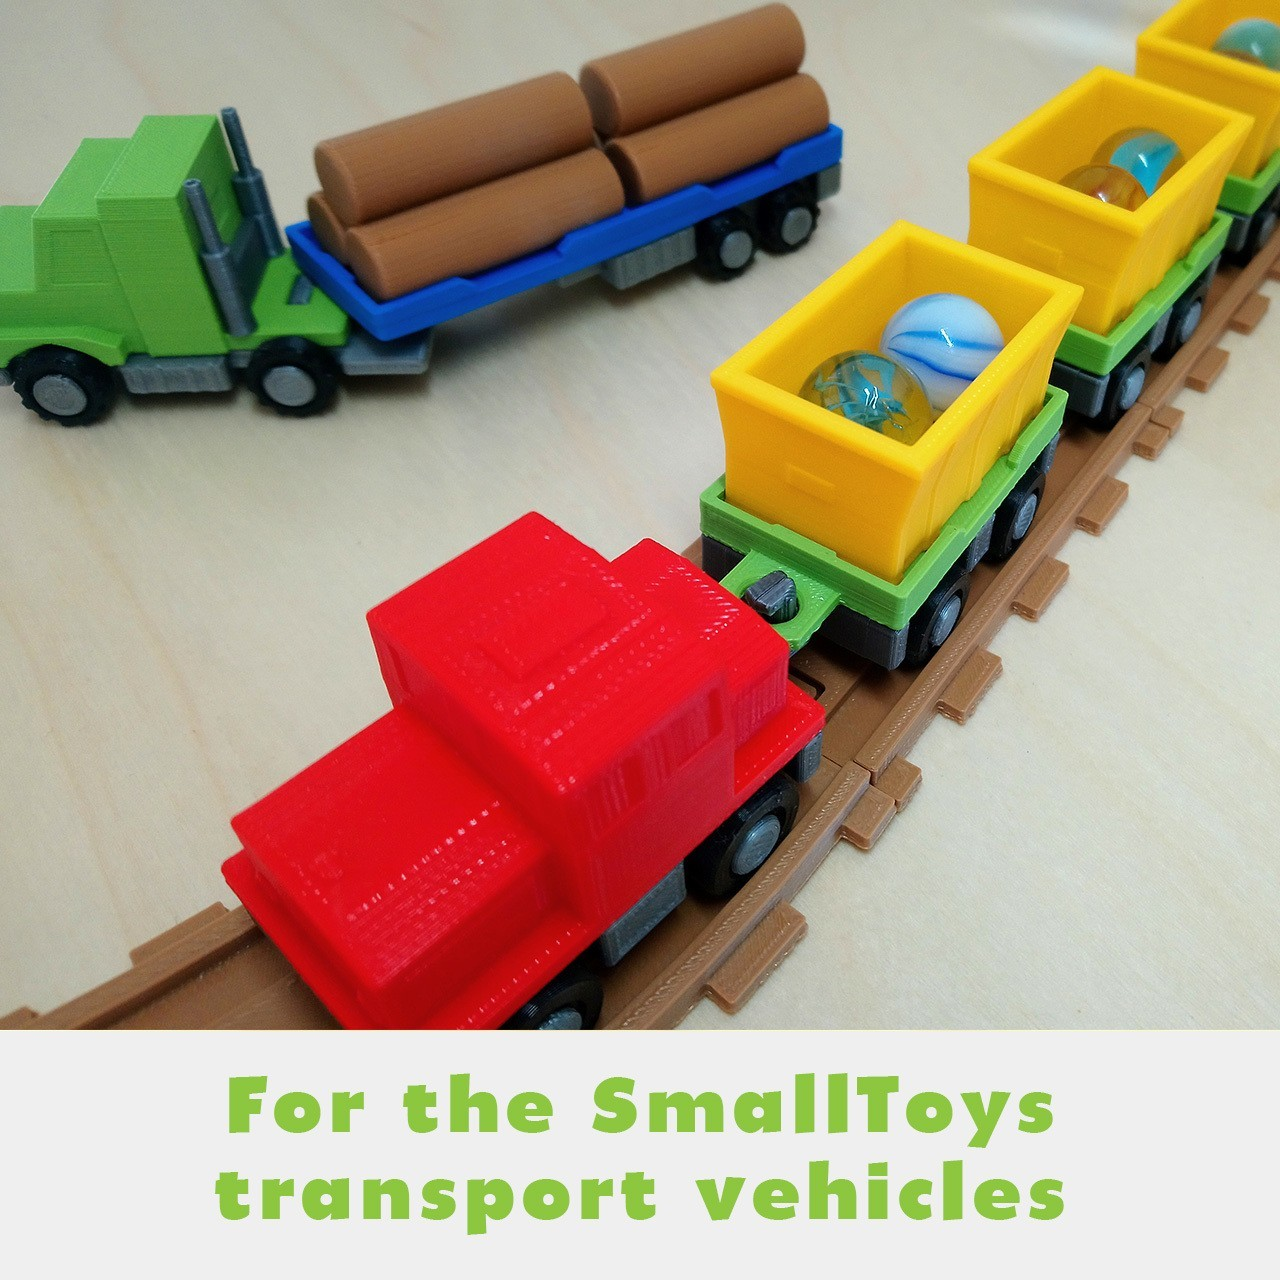 smalltoys-fa02.jpg Download free STL file SmallToys - Freight Accessories • 3D print template, Wabby